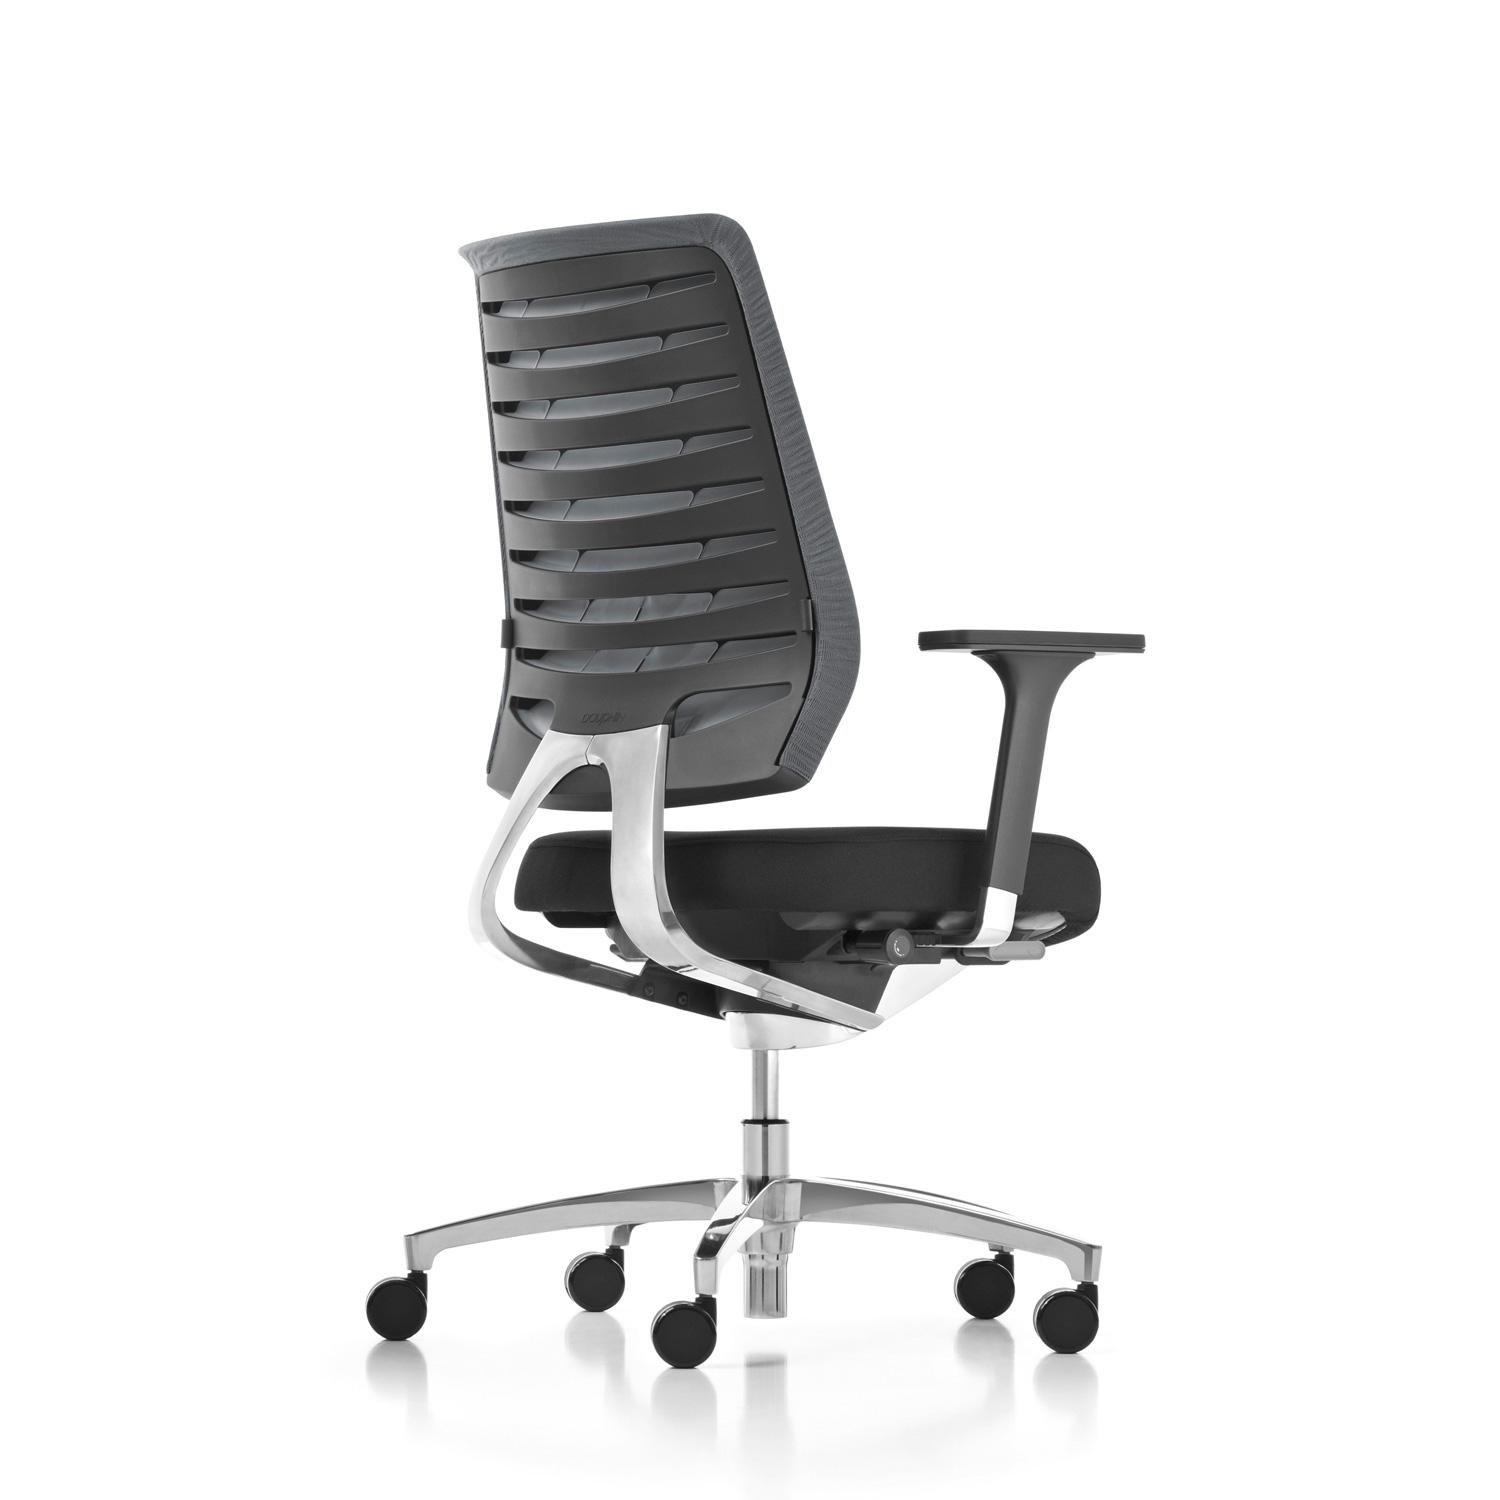 Dauphin Chairs X Code Ergonomic Executive Task Chair By Dauphin Business Interiors